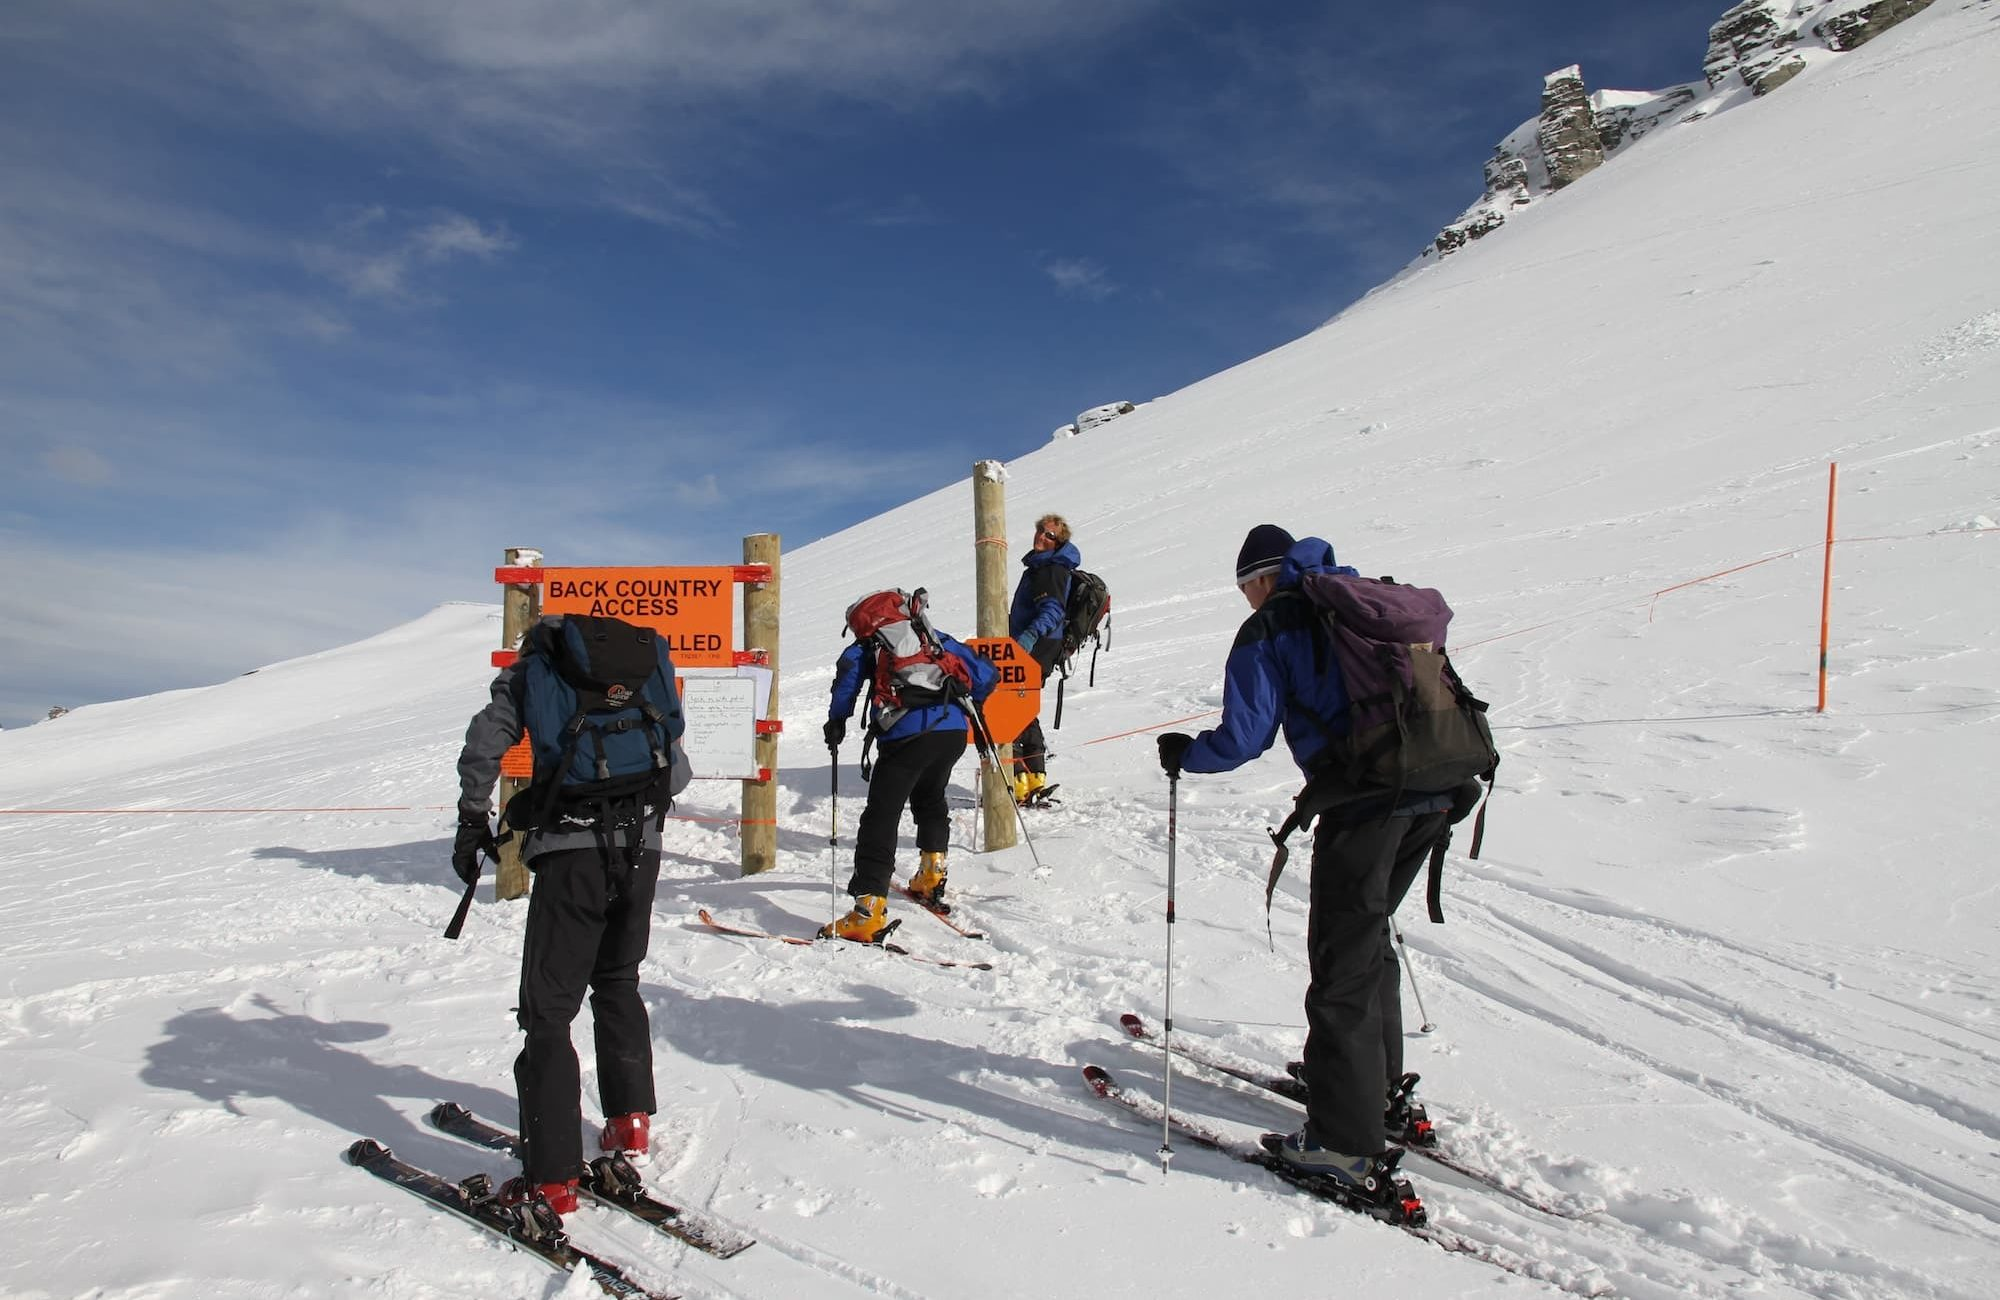 Ski touring for avalanche awareness field day